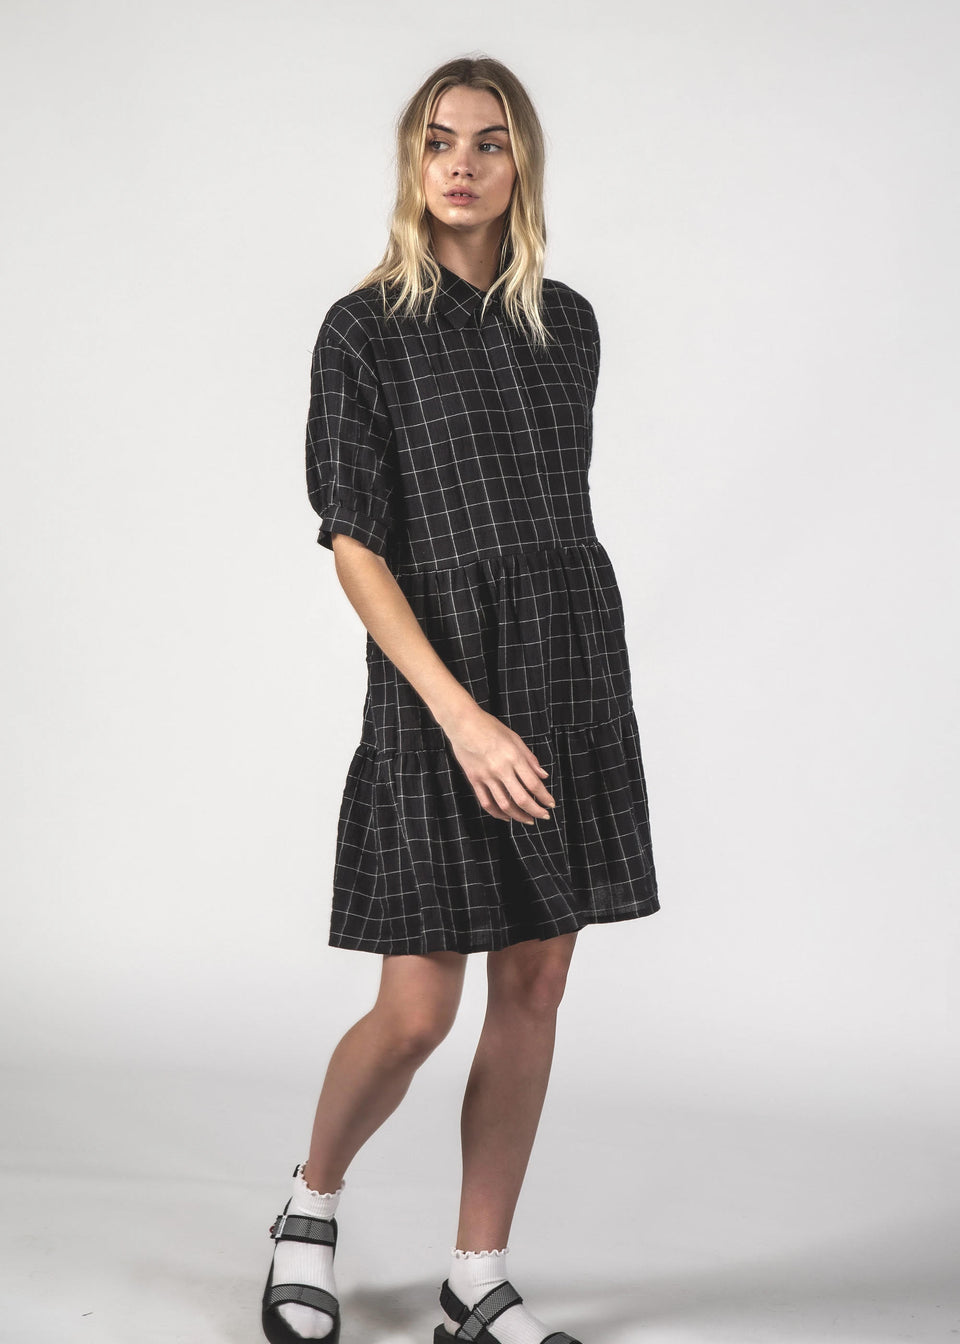 Thing Thing Nova Dress Black Grid